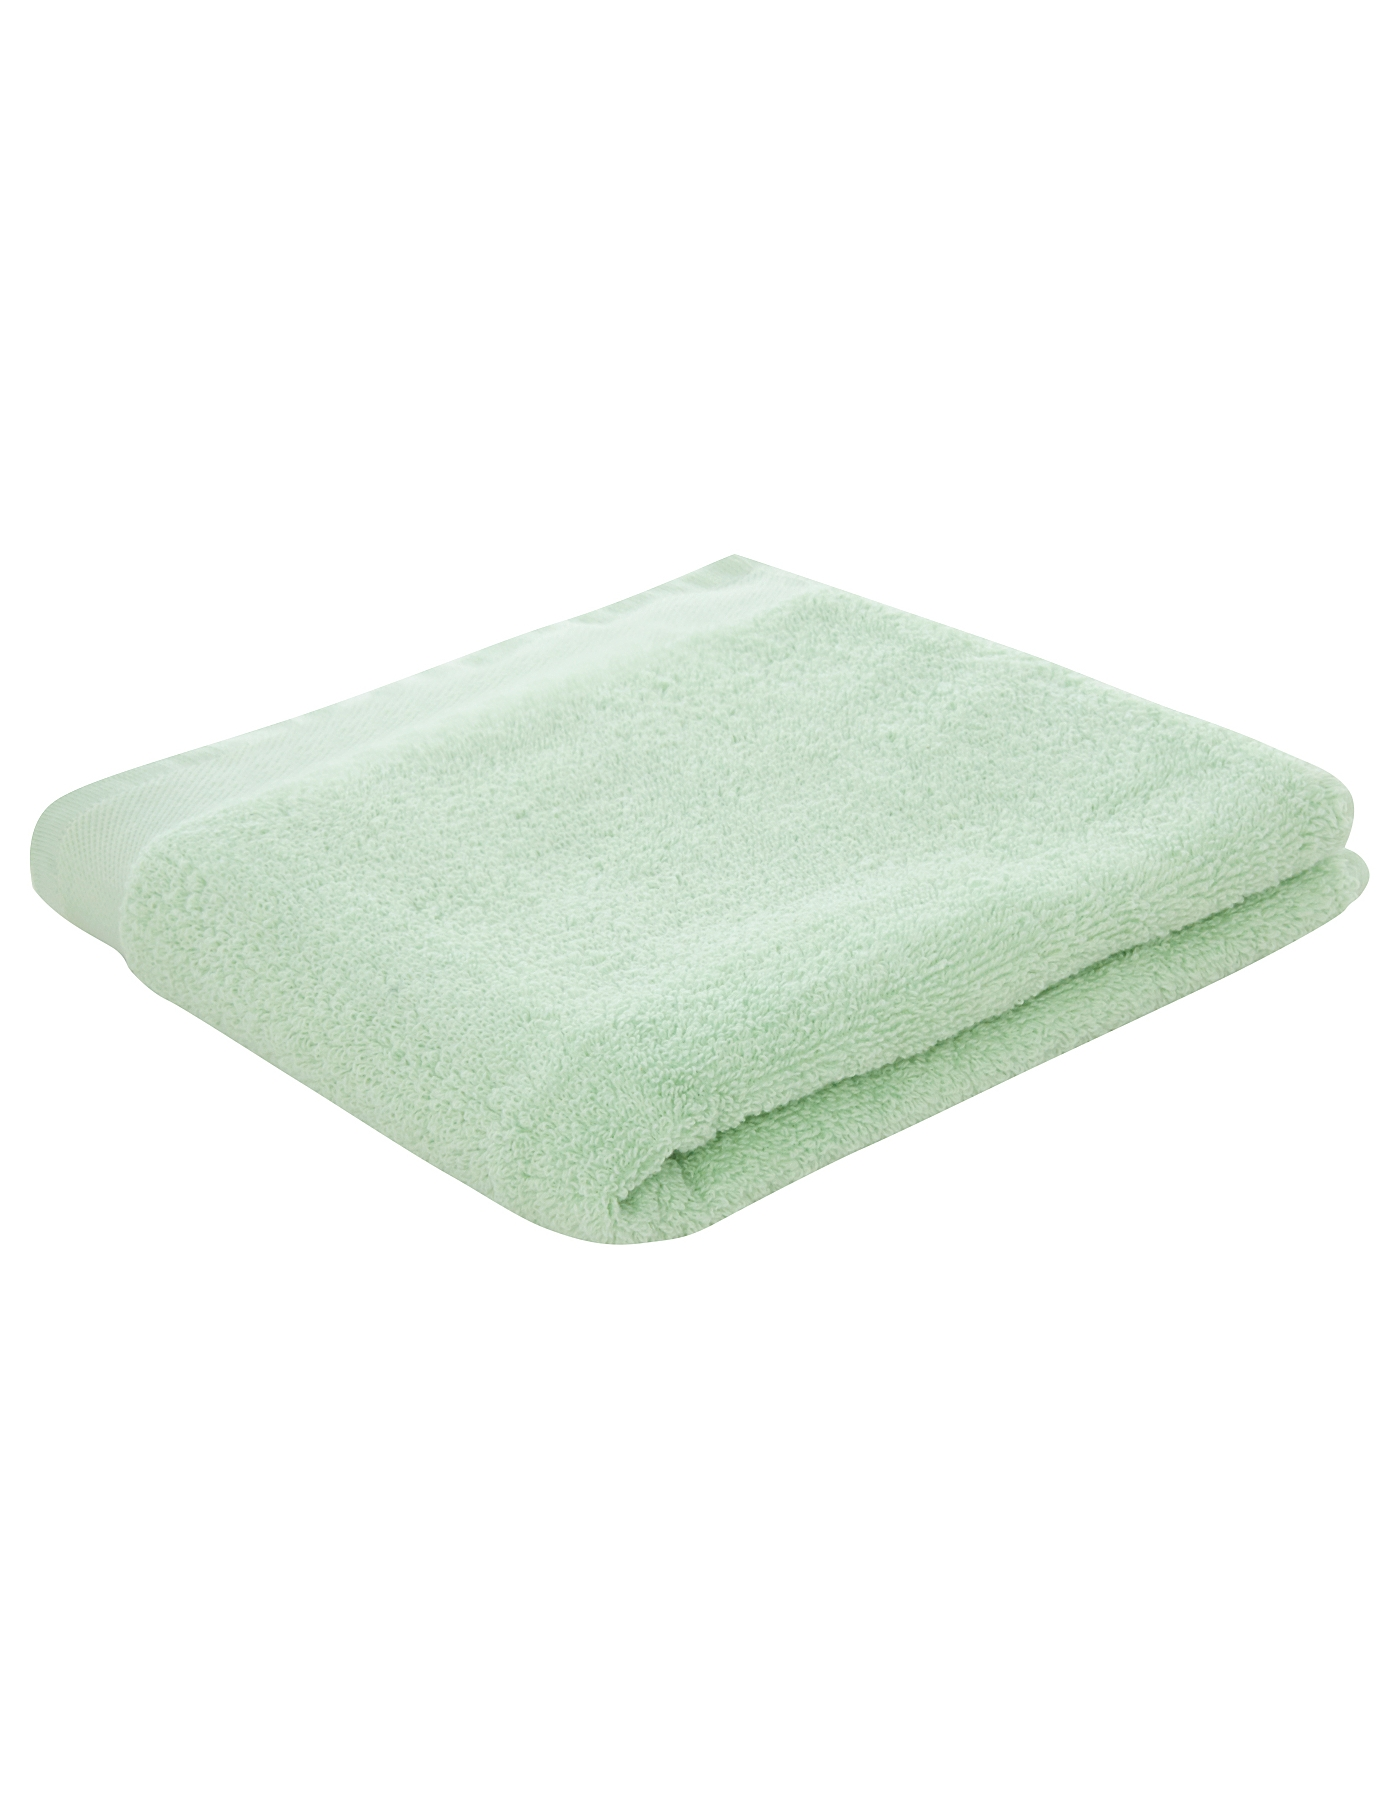 Anti Slip Bath Mat Asda